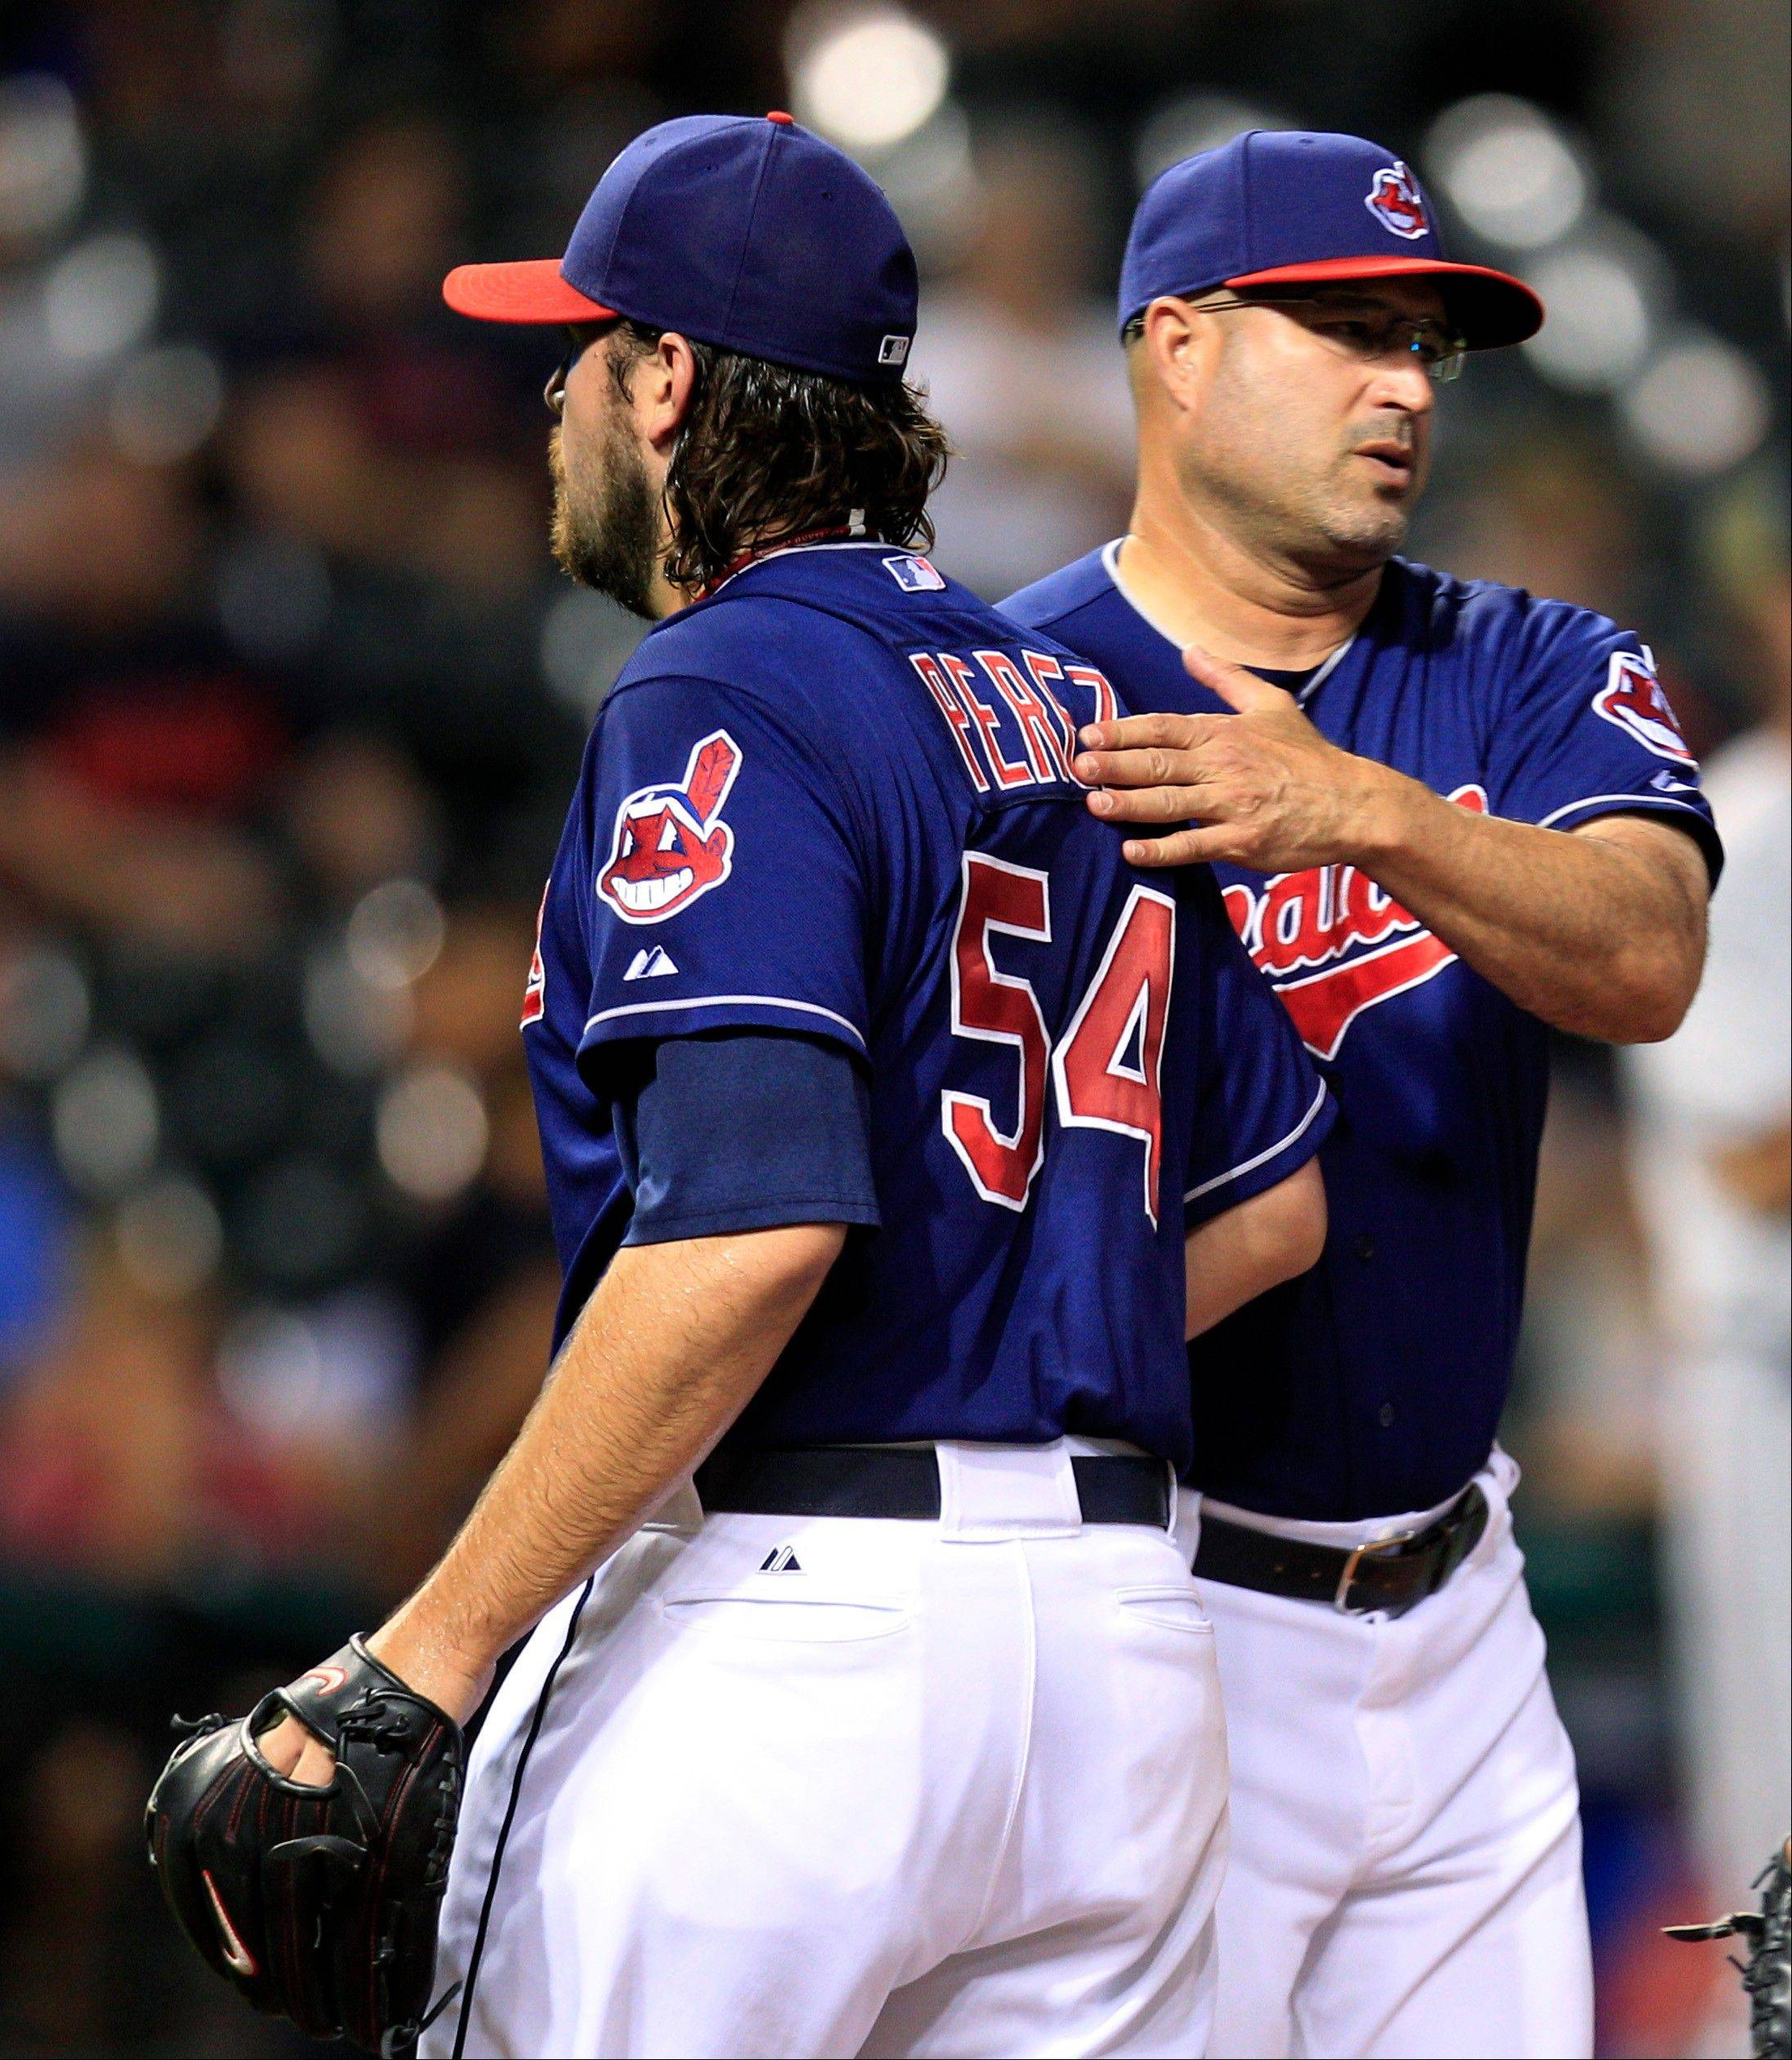 Manager Manny Acta pats Chris Perez on the back after the Indians reliever blew a ninth-inning lead Tuesday against the Twins in Cleveland.